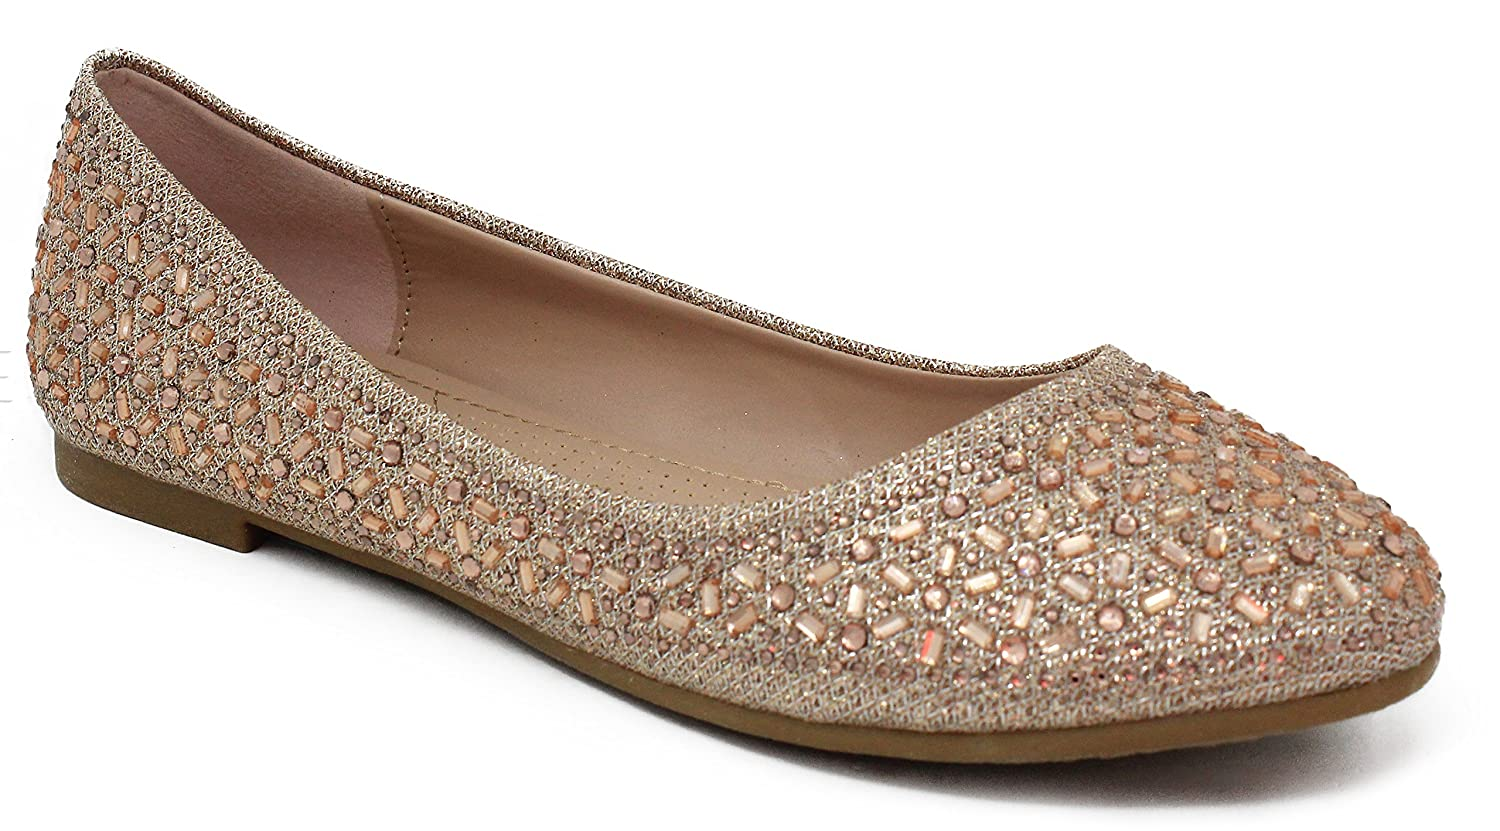 MVE Shoes Women's Crystal Rhinestone Slip On- Formal Glitter Flats B07B1FMDQV 7 B(M) US|Champane*j